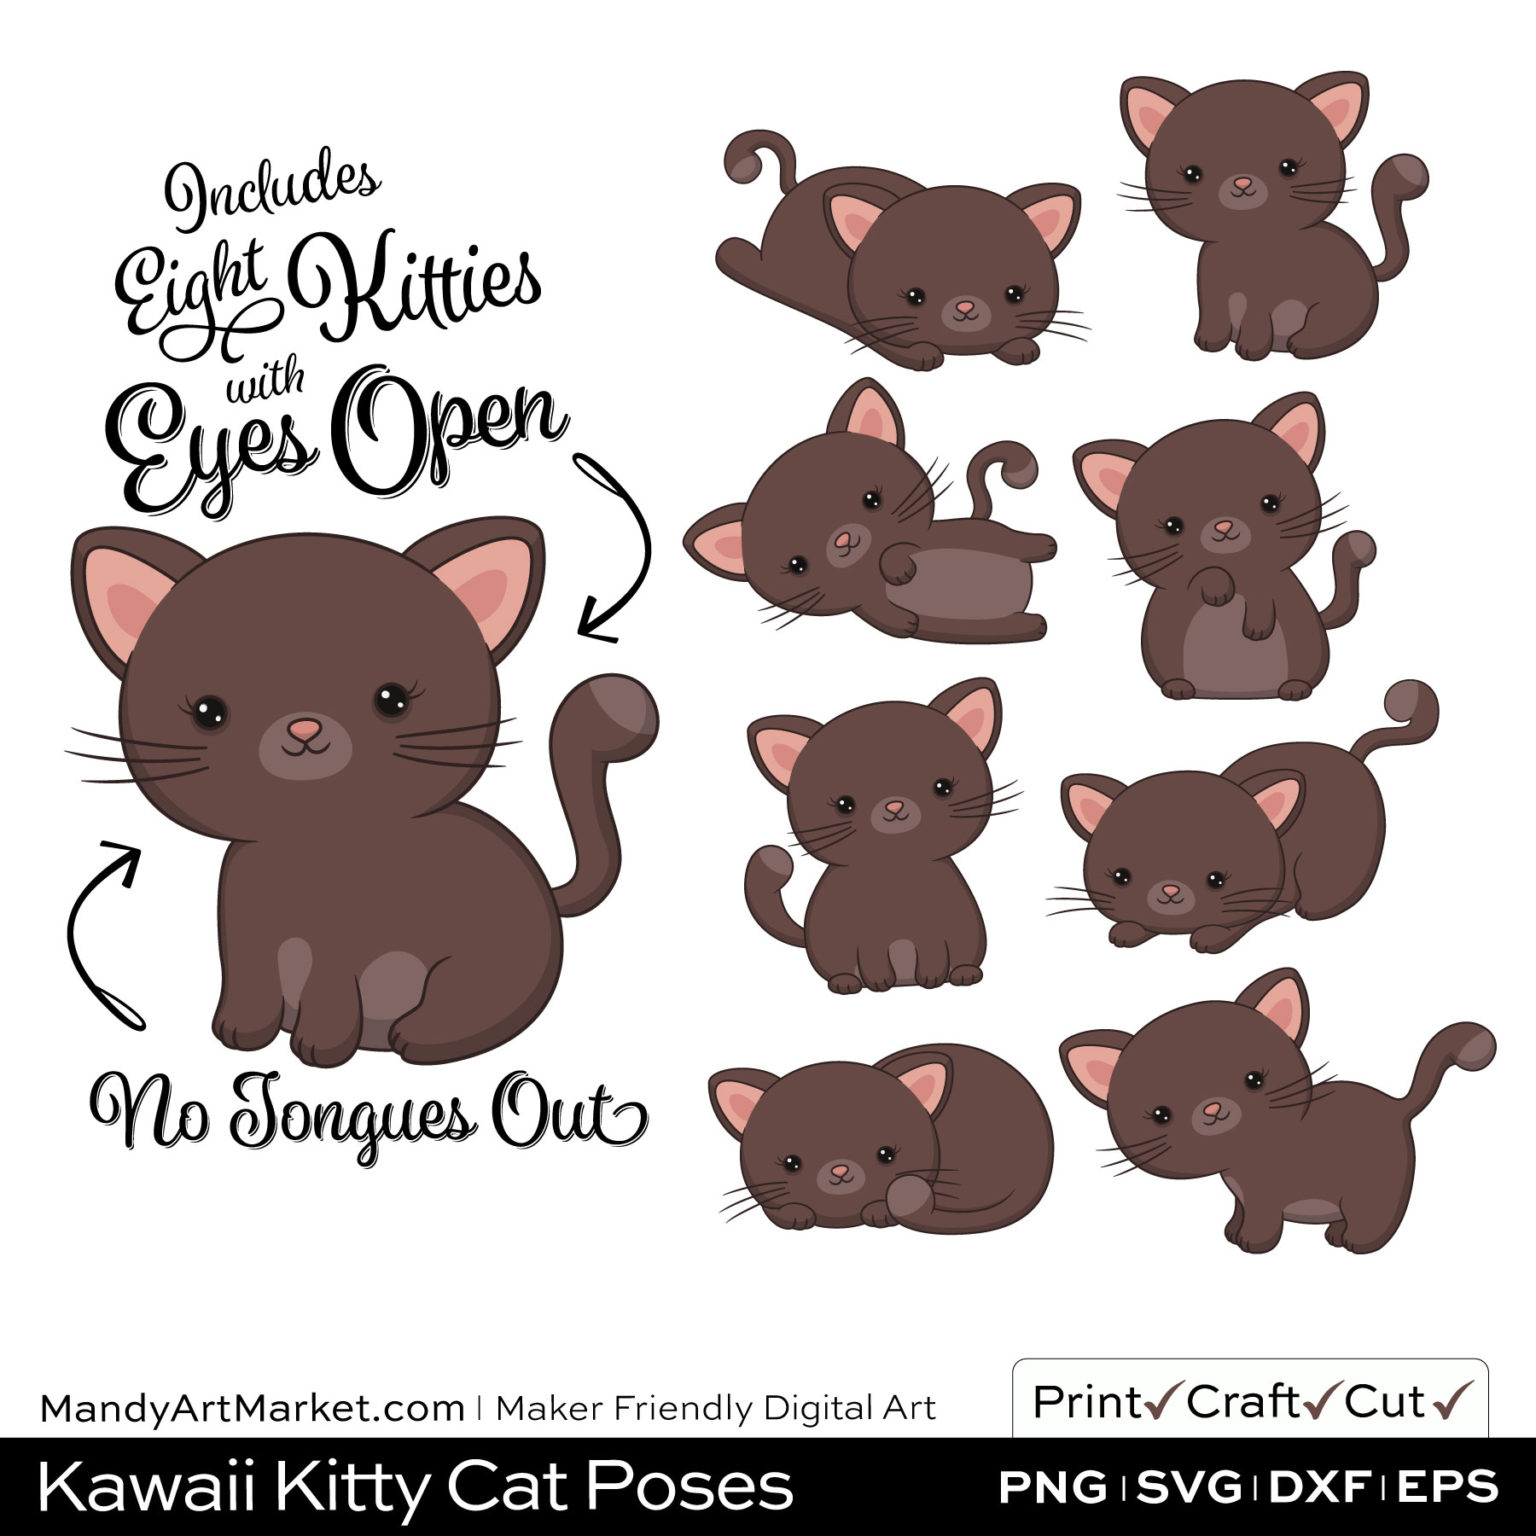 Cocoa Brown Kawaii Kitty Cat Poses Clipart on Wood Background